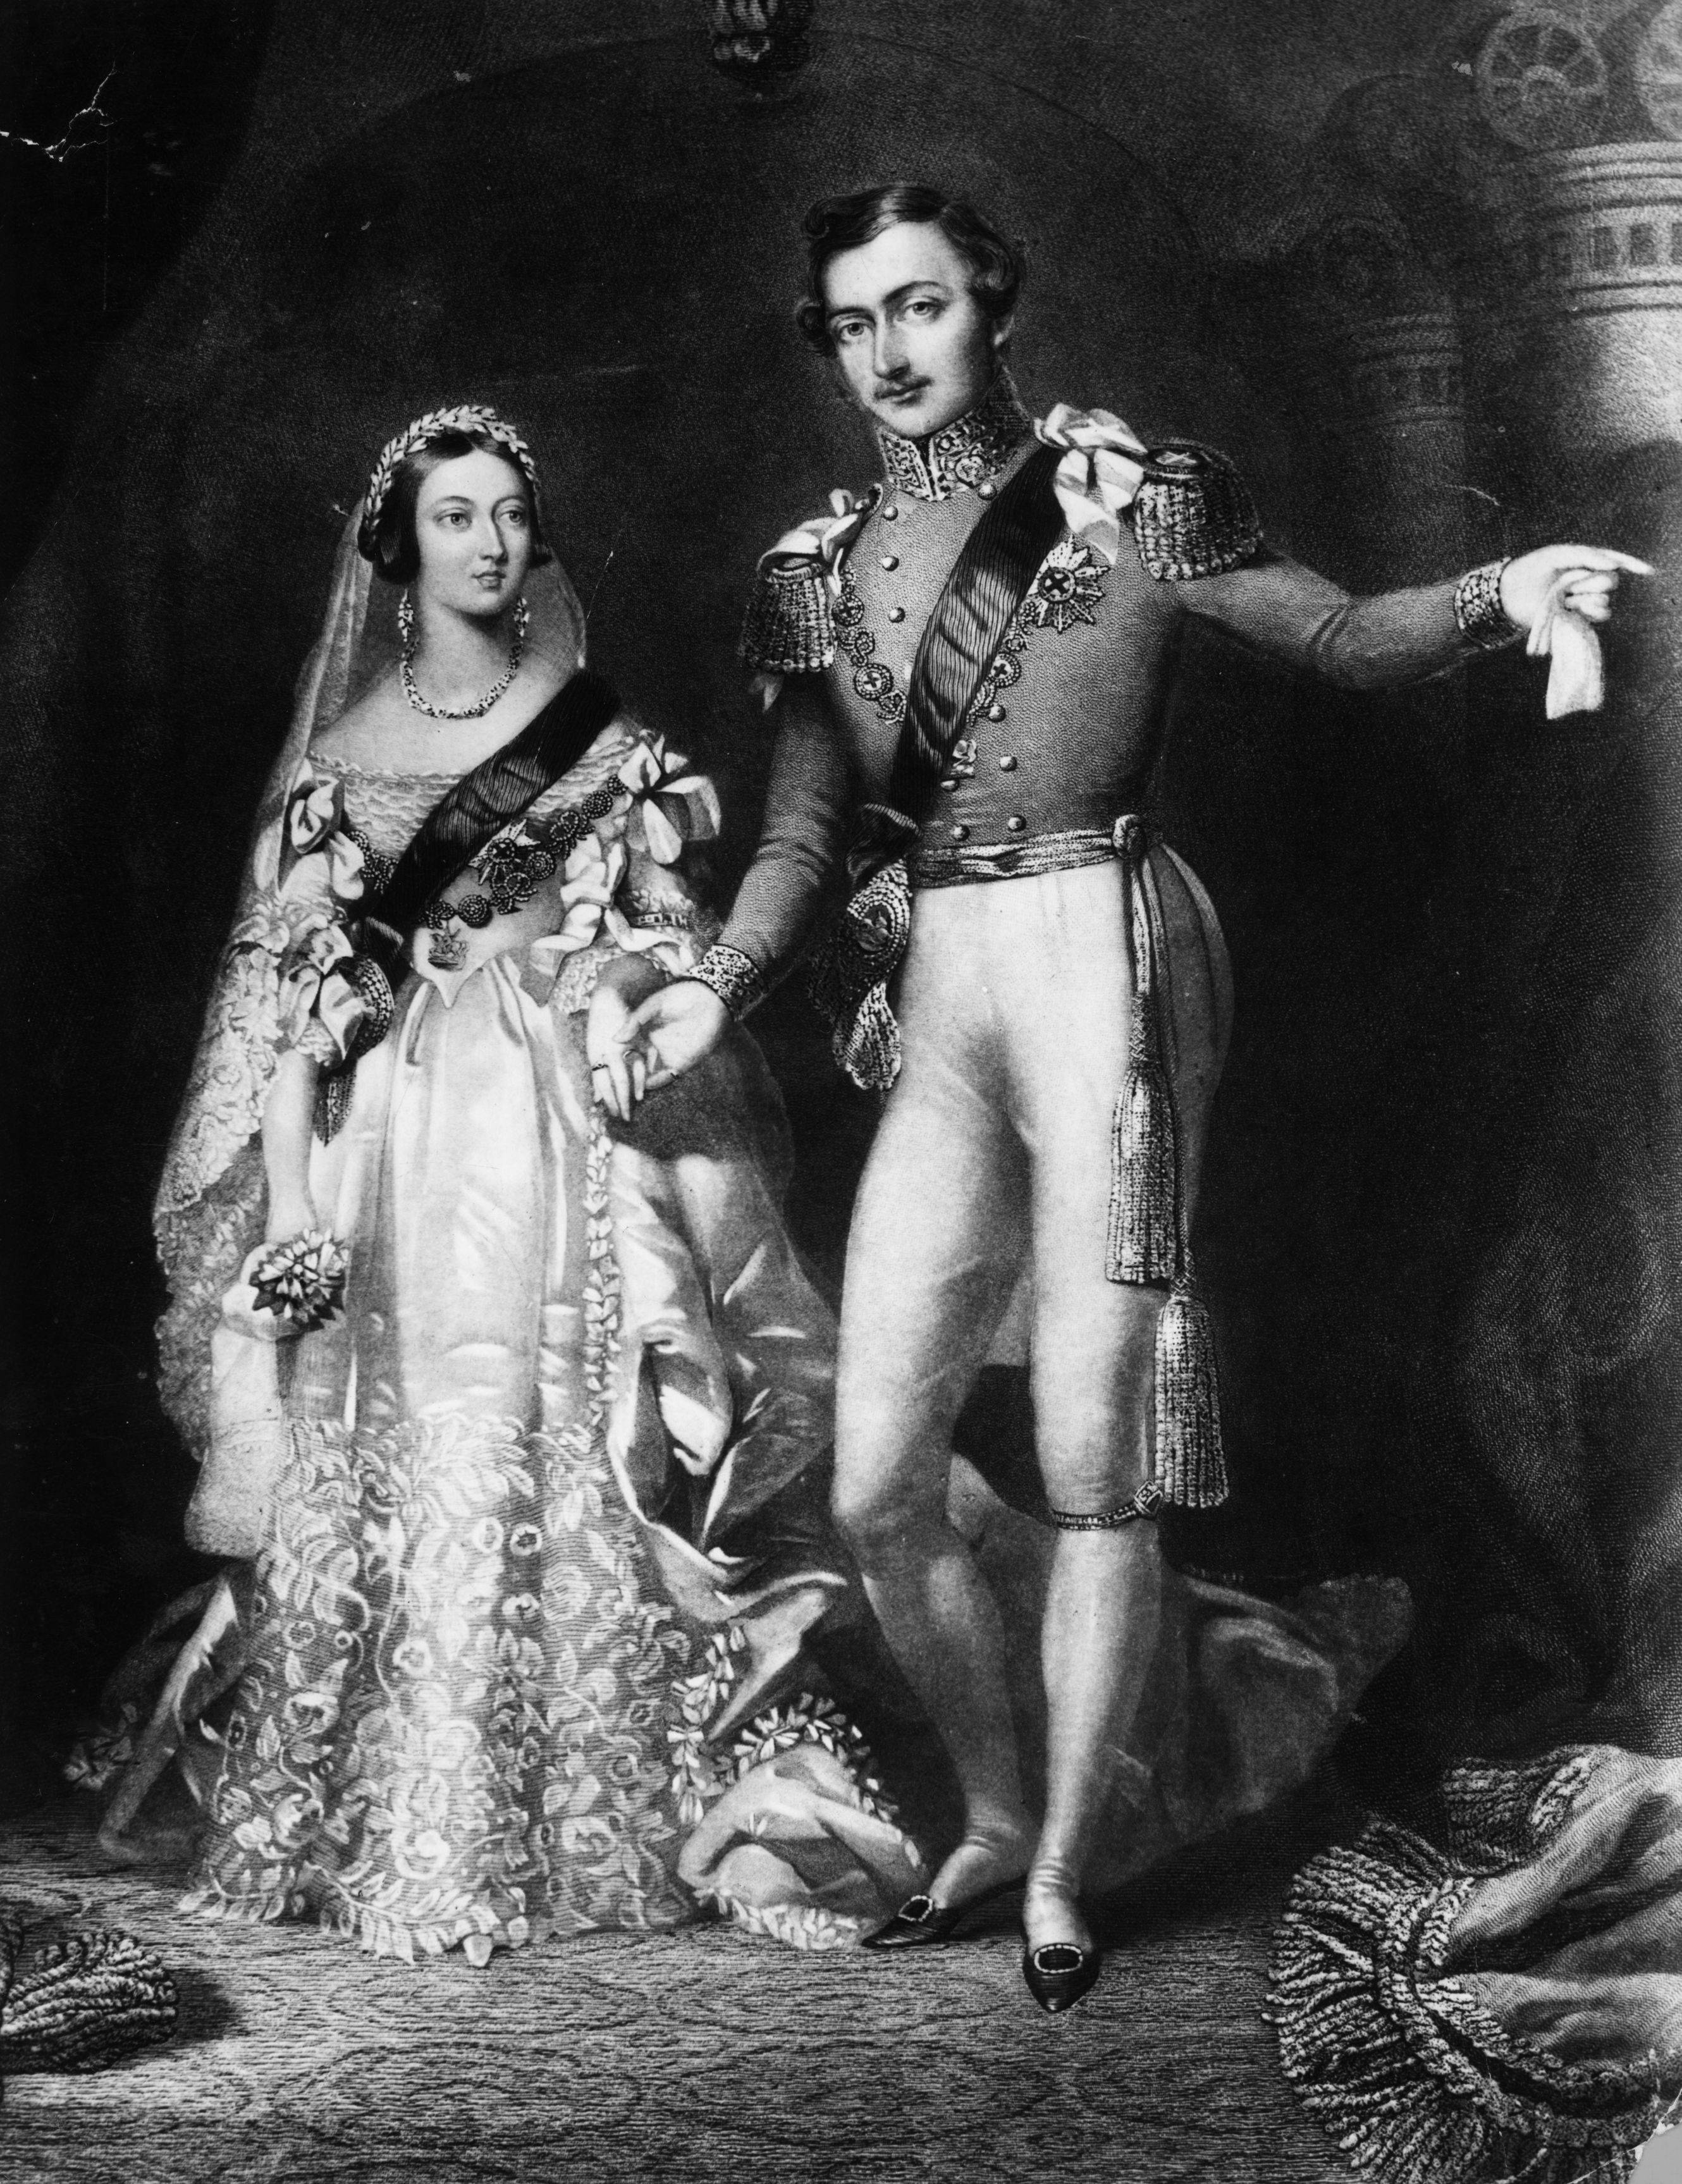 10th February 1840:  Queen Victoria (1819 - 1901) and Prince Albert (1819 - 1861) on their return from the marriage service at St James's Palace, London. Original Artwork: Engraved by S Reynolds after F Lock.  (Photo by Rischgitz/Getty Images)